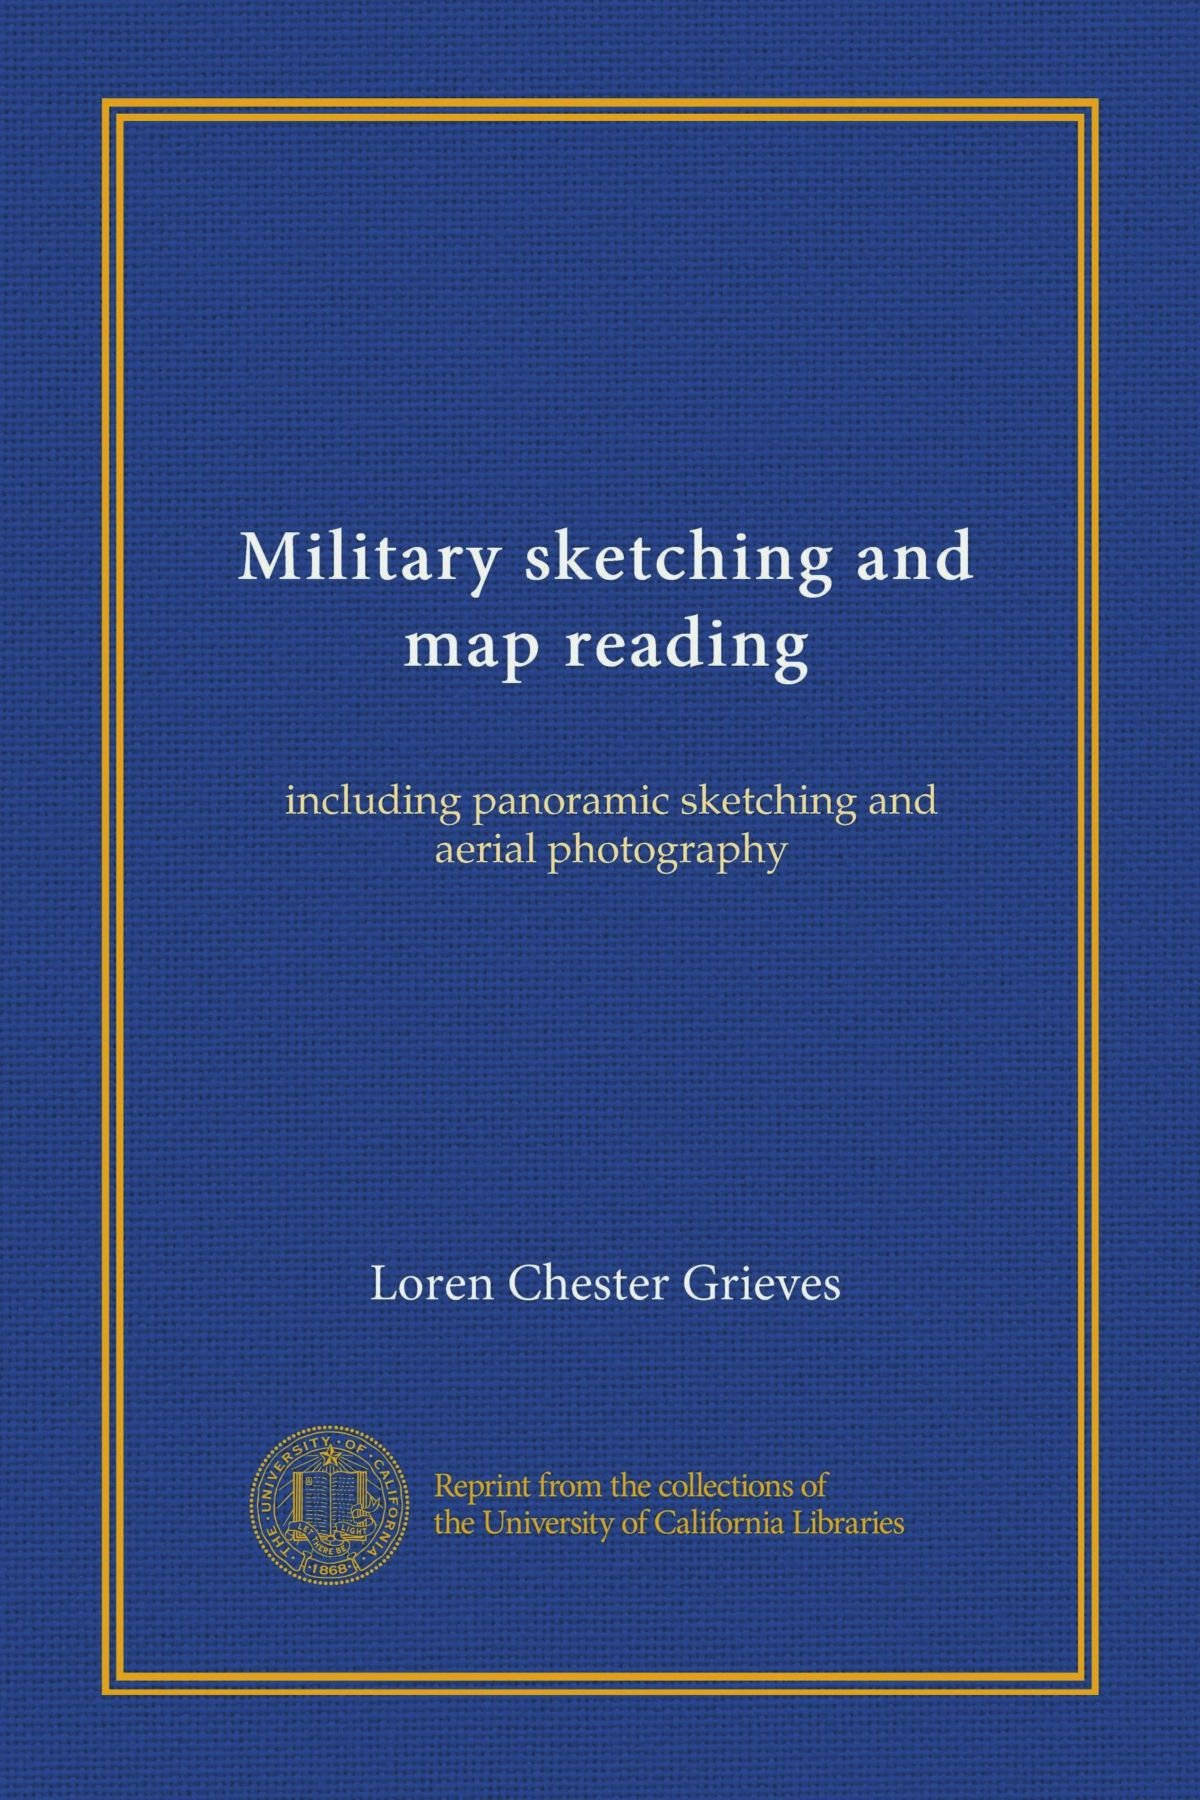 Military sketching and map reading: including panoramic sketching and aerial photography